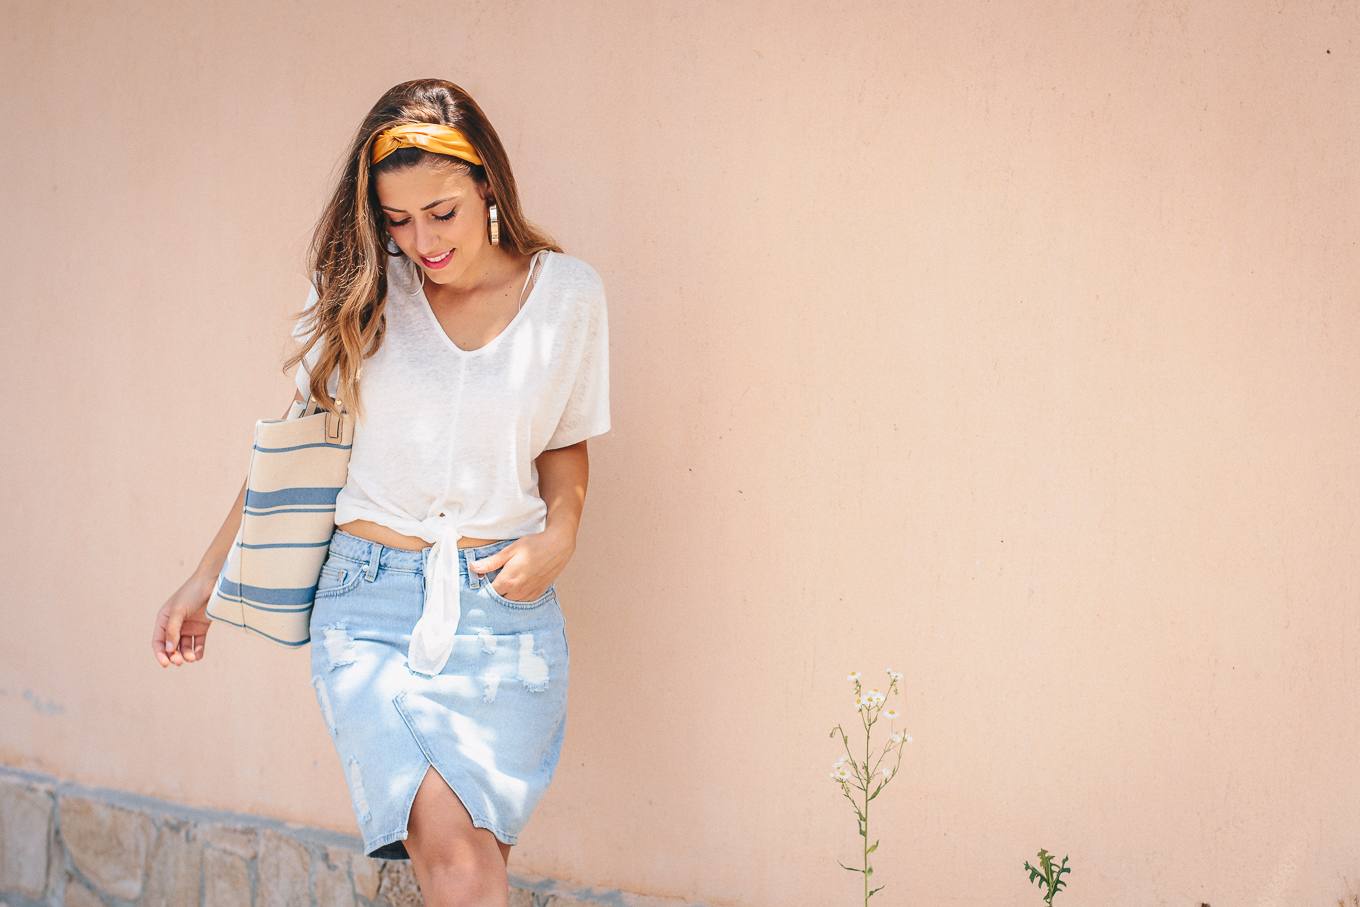 Denim skirt retro look